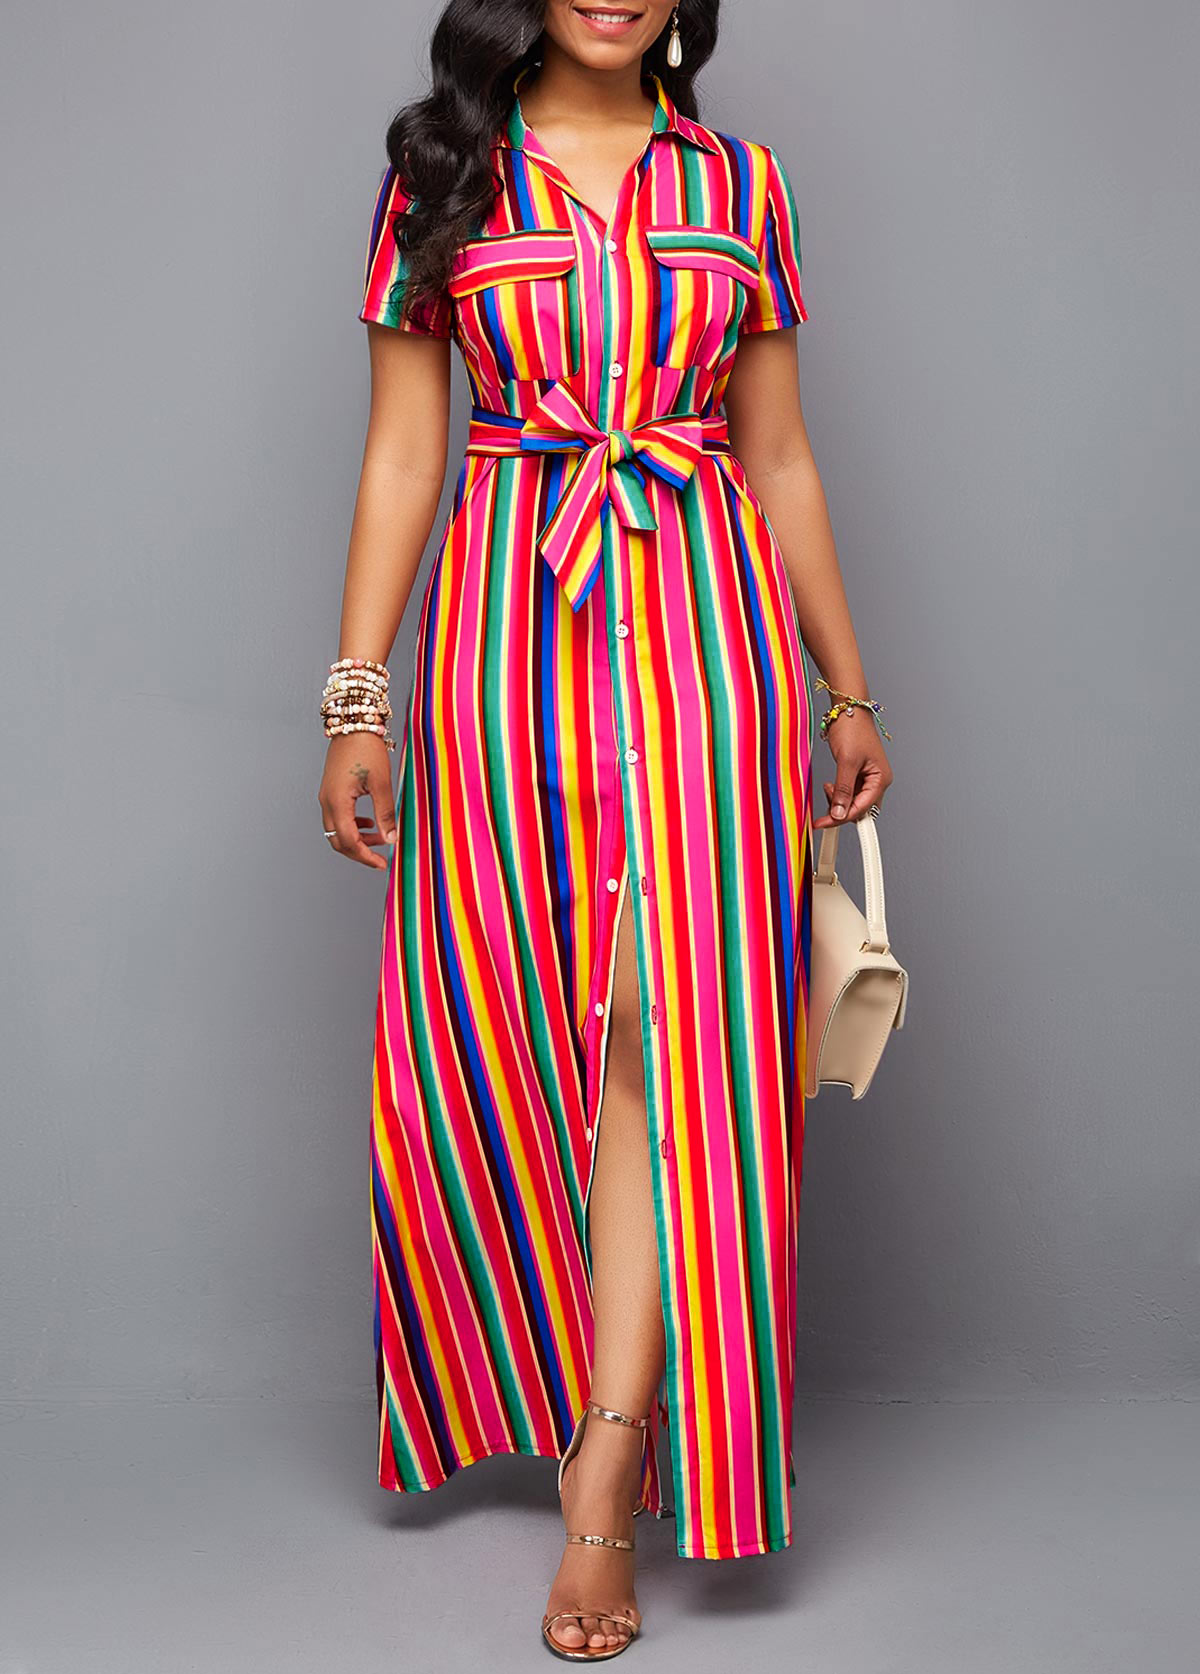 ROTITA Button Up Turndown Collar Belted Rainbow Color Dress